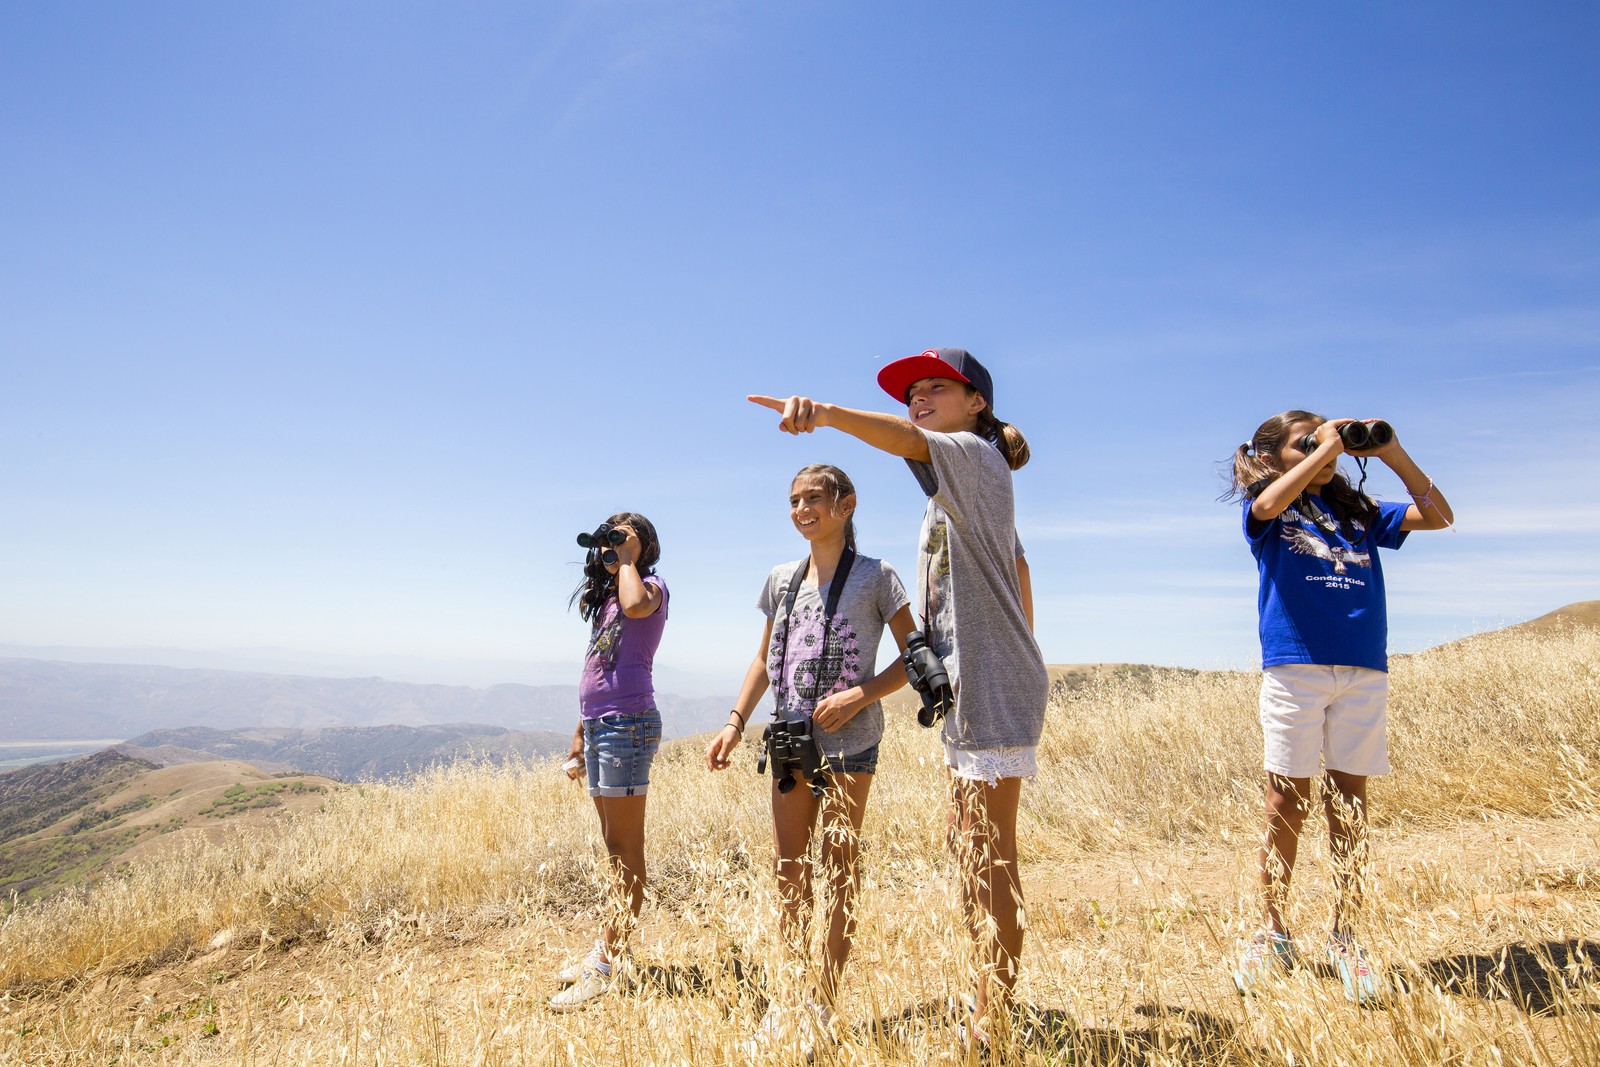 Students from Fillmore Elementary School learn how to use binoculars and search for endangered California condors on Hopper Mountain National Wildlife Refuge. This refuge is directly behind and above the school.